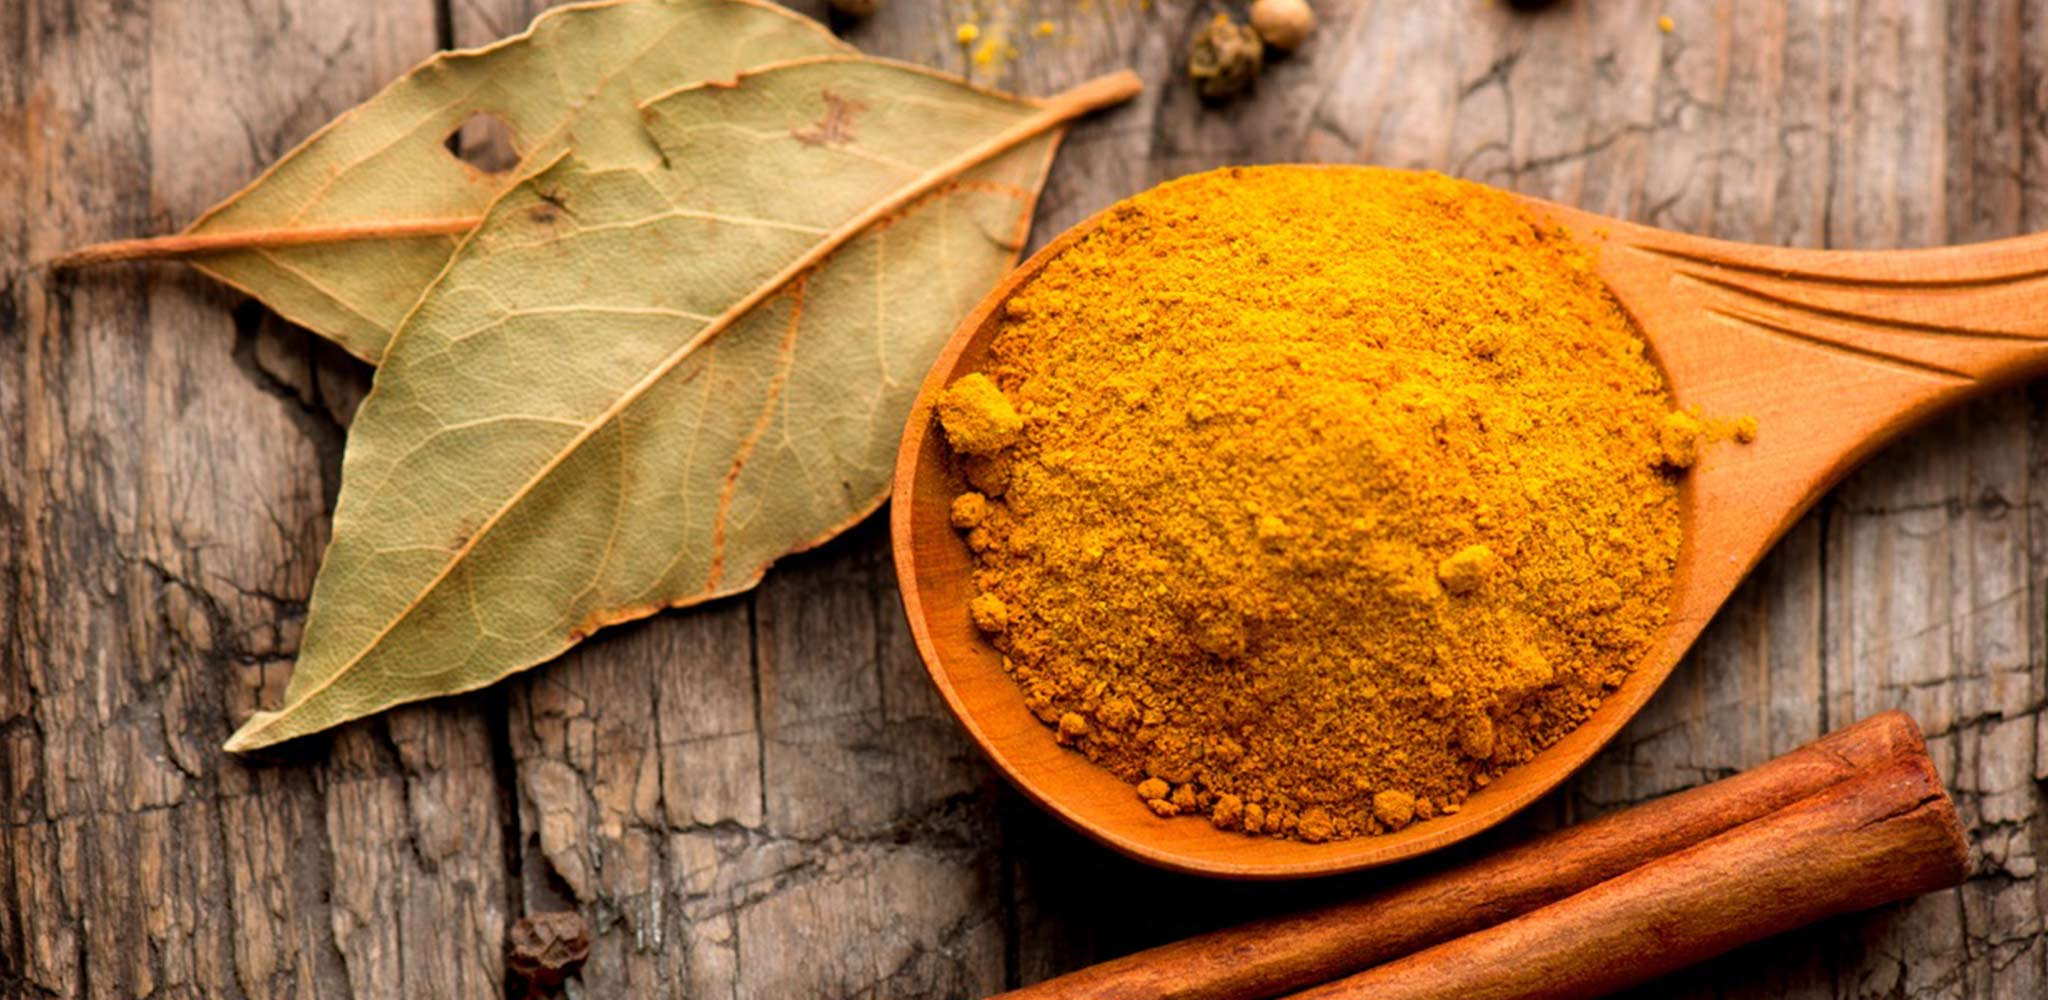 Spoonful of healthy spices